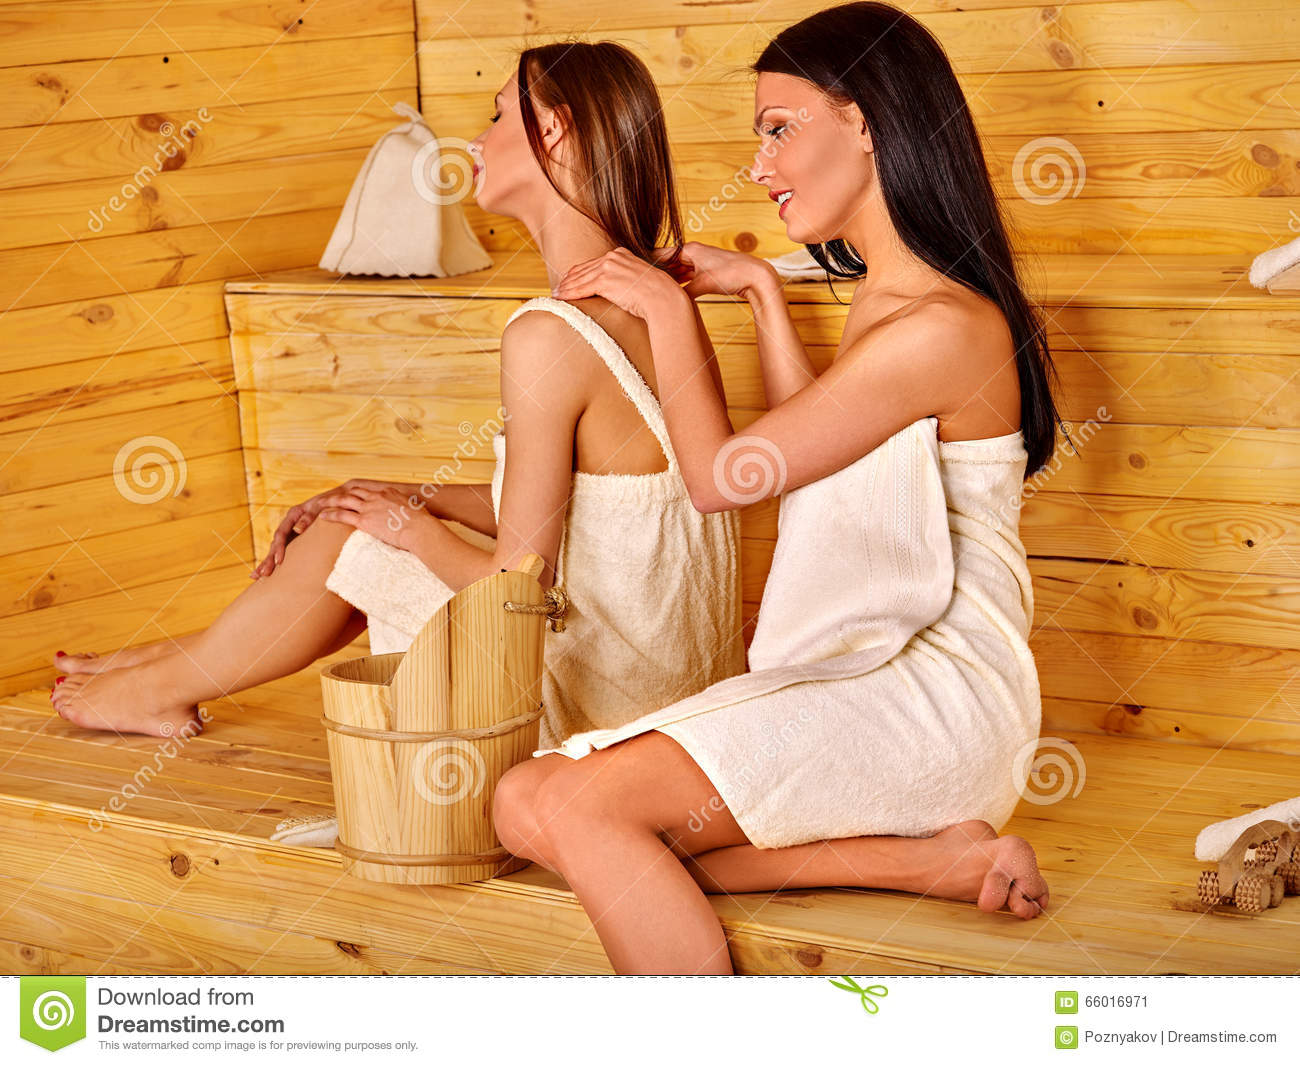 girls massaging each other